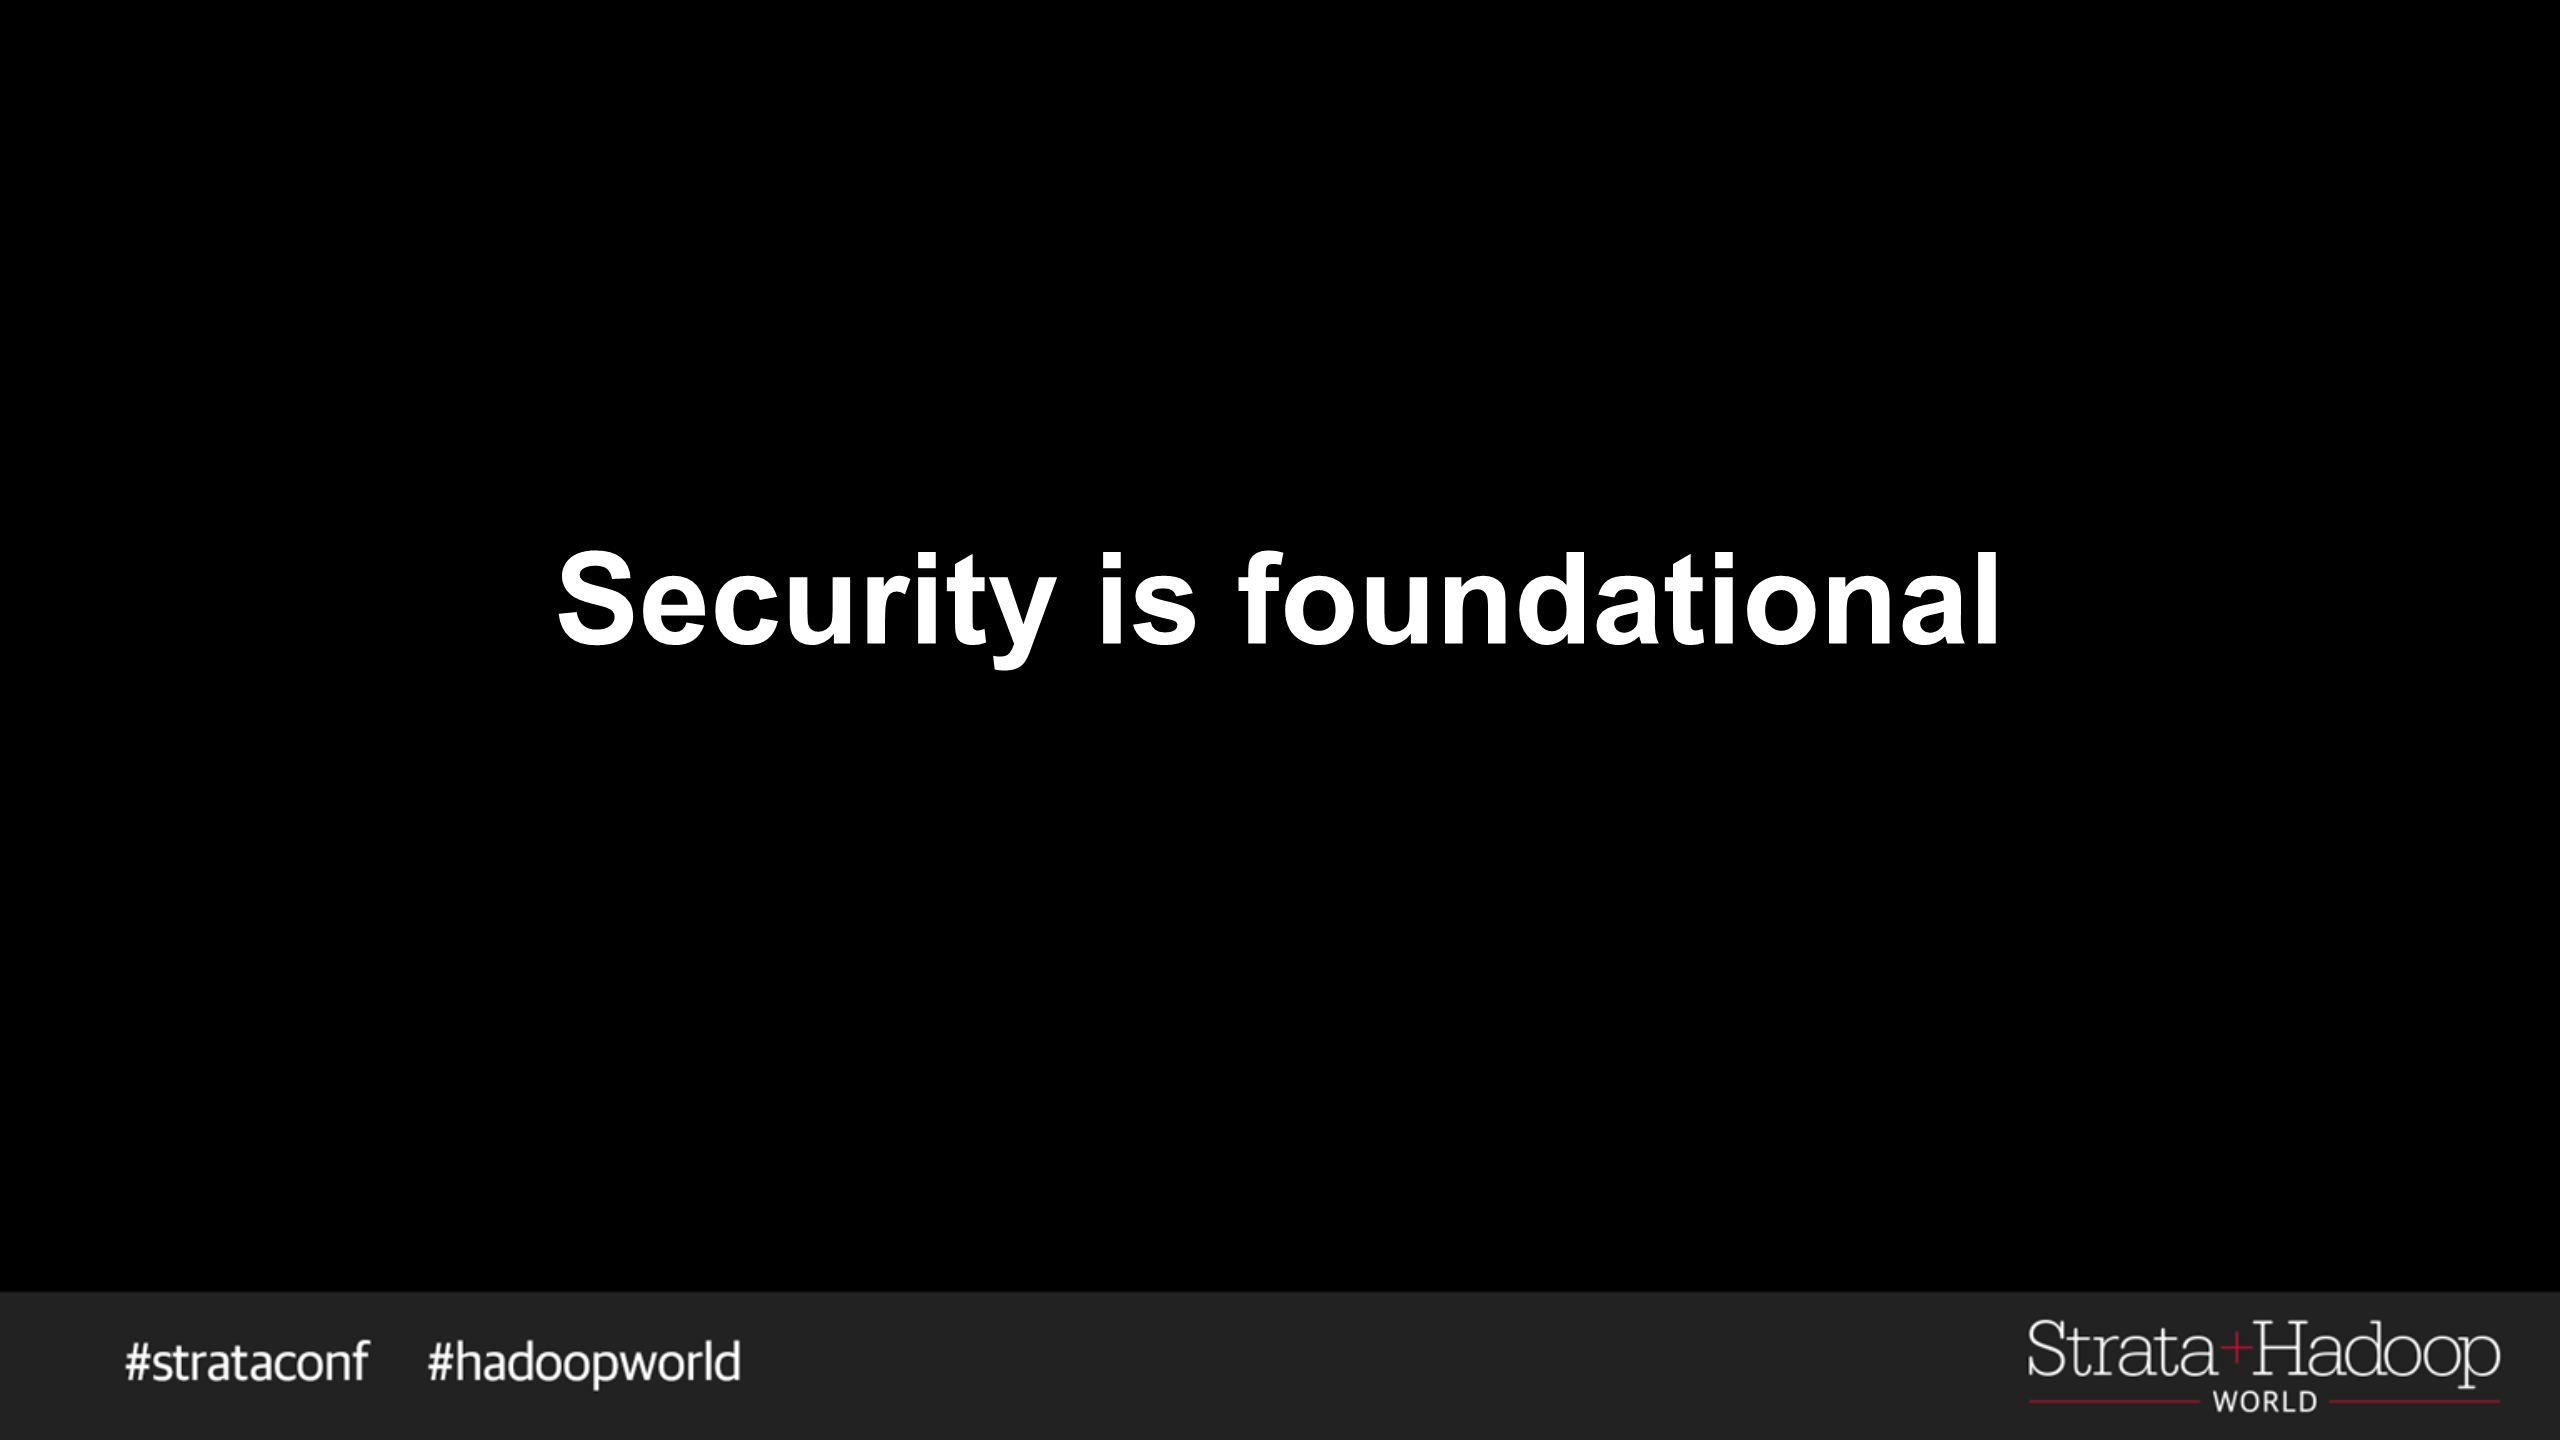 Security is foundational